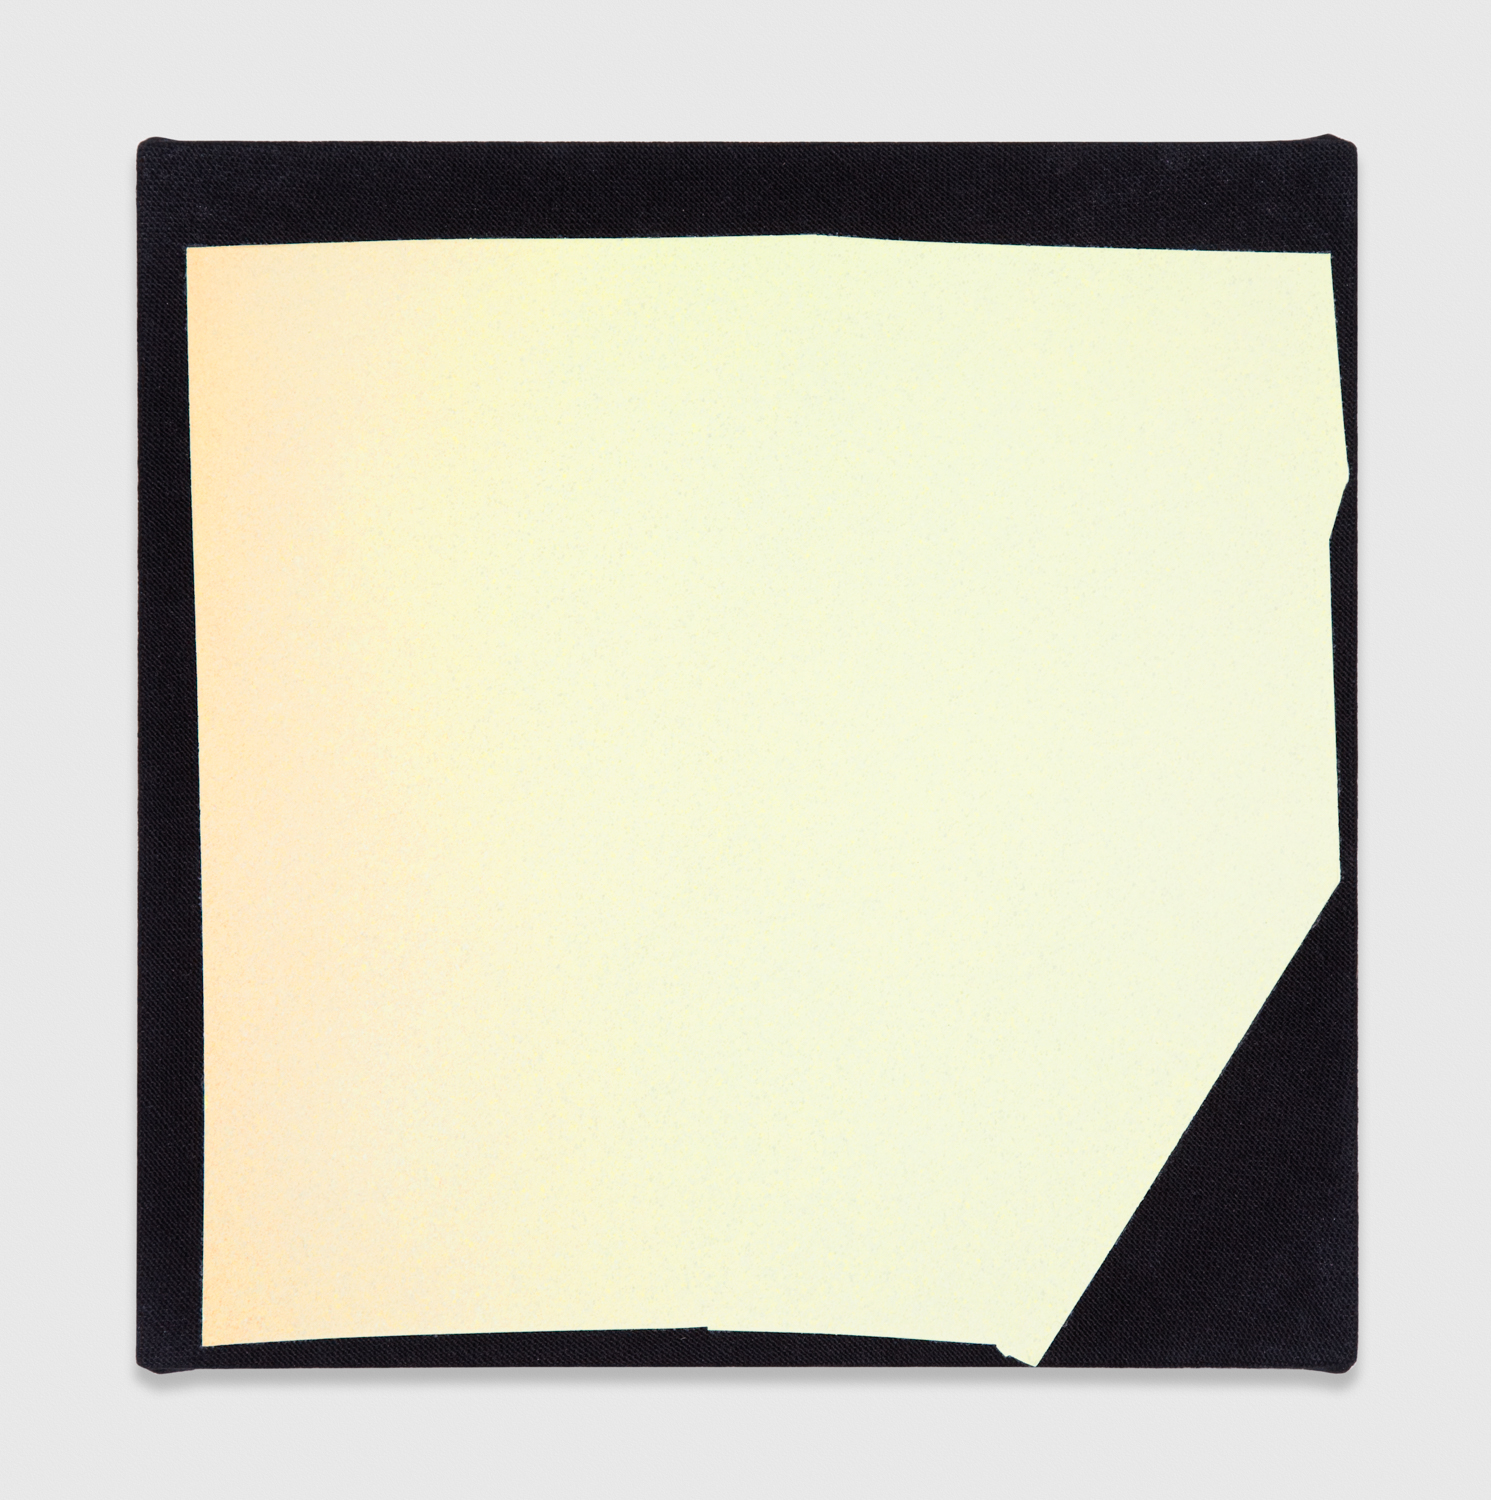 Kim Fisher  Magazine Painting (Washed Out Chartreuse)  2012 Oil on dyed linen 14h x 14w in KF009